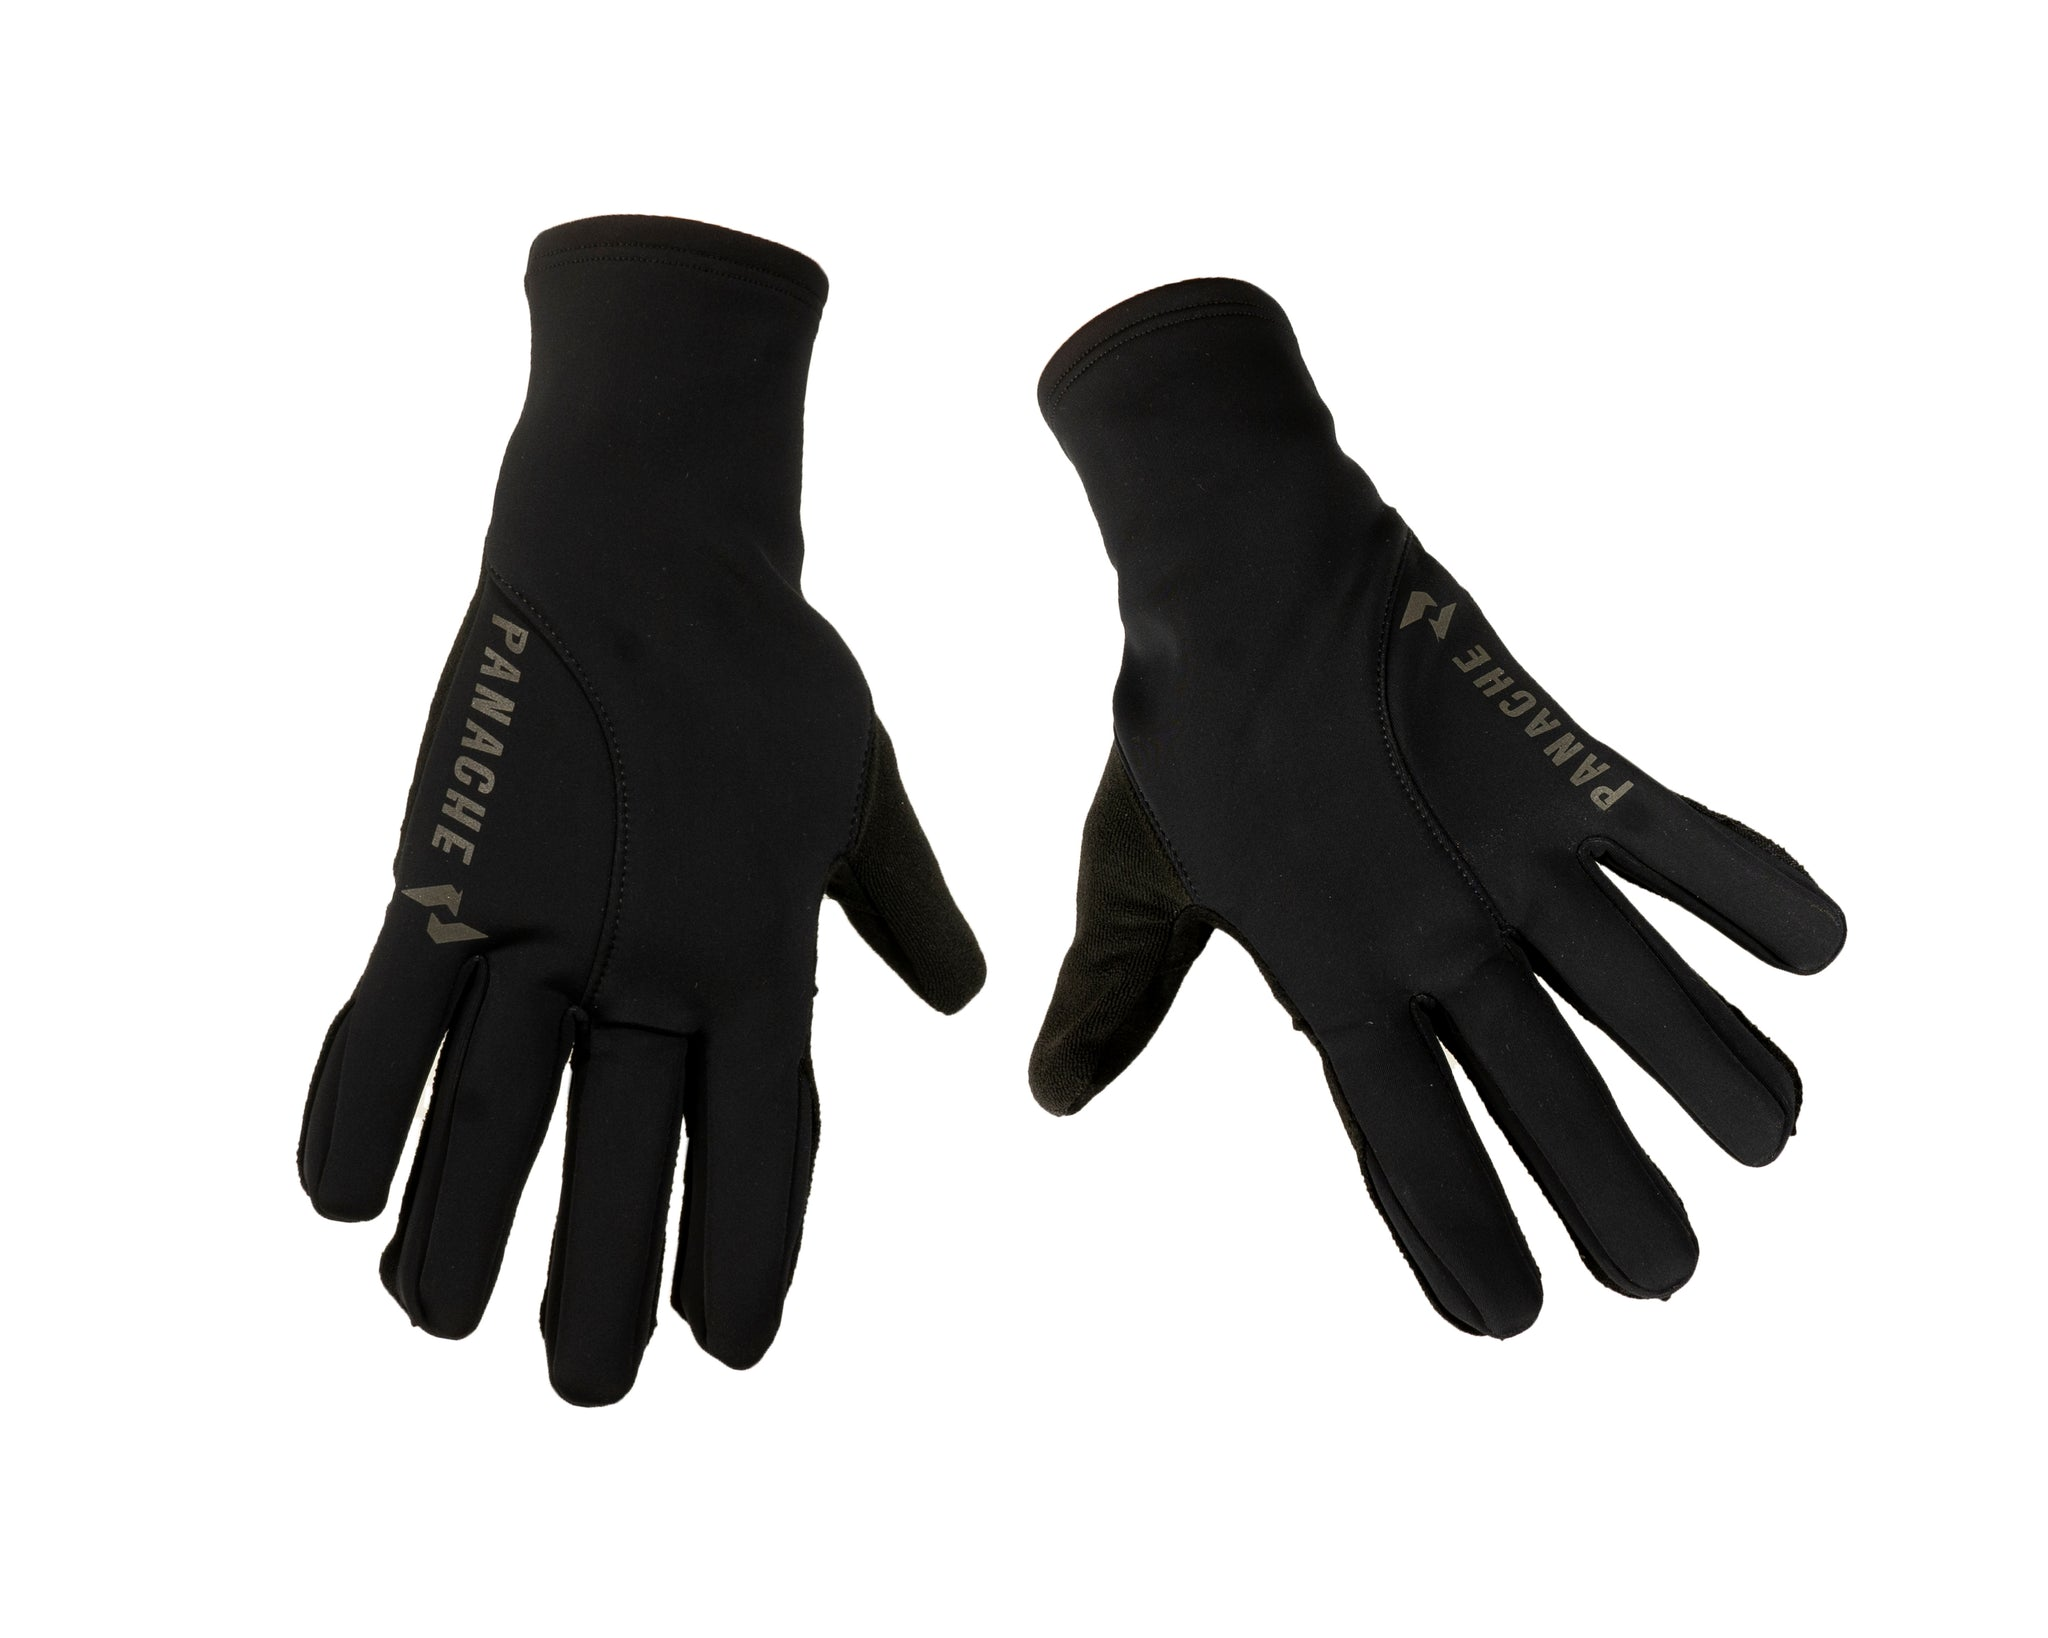 Pro Issue Issue Thermal Glove